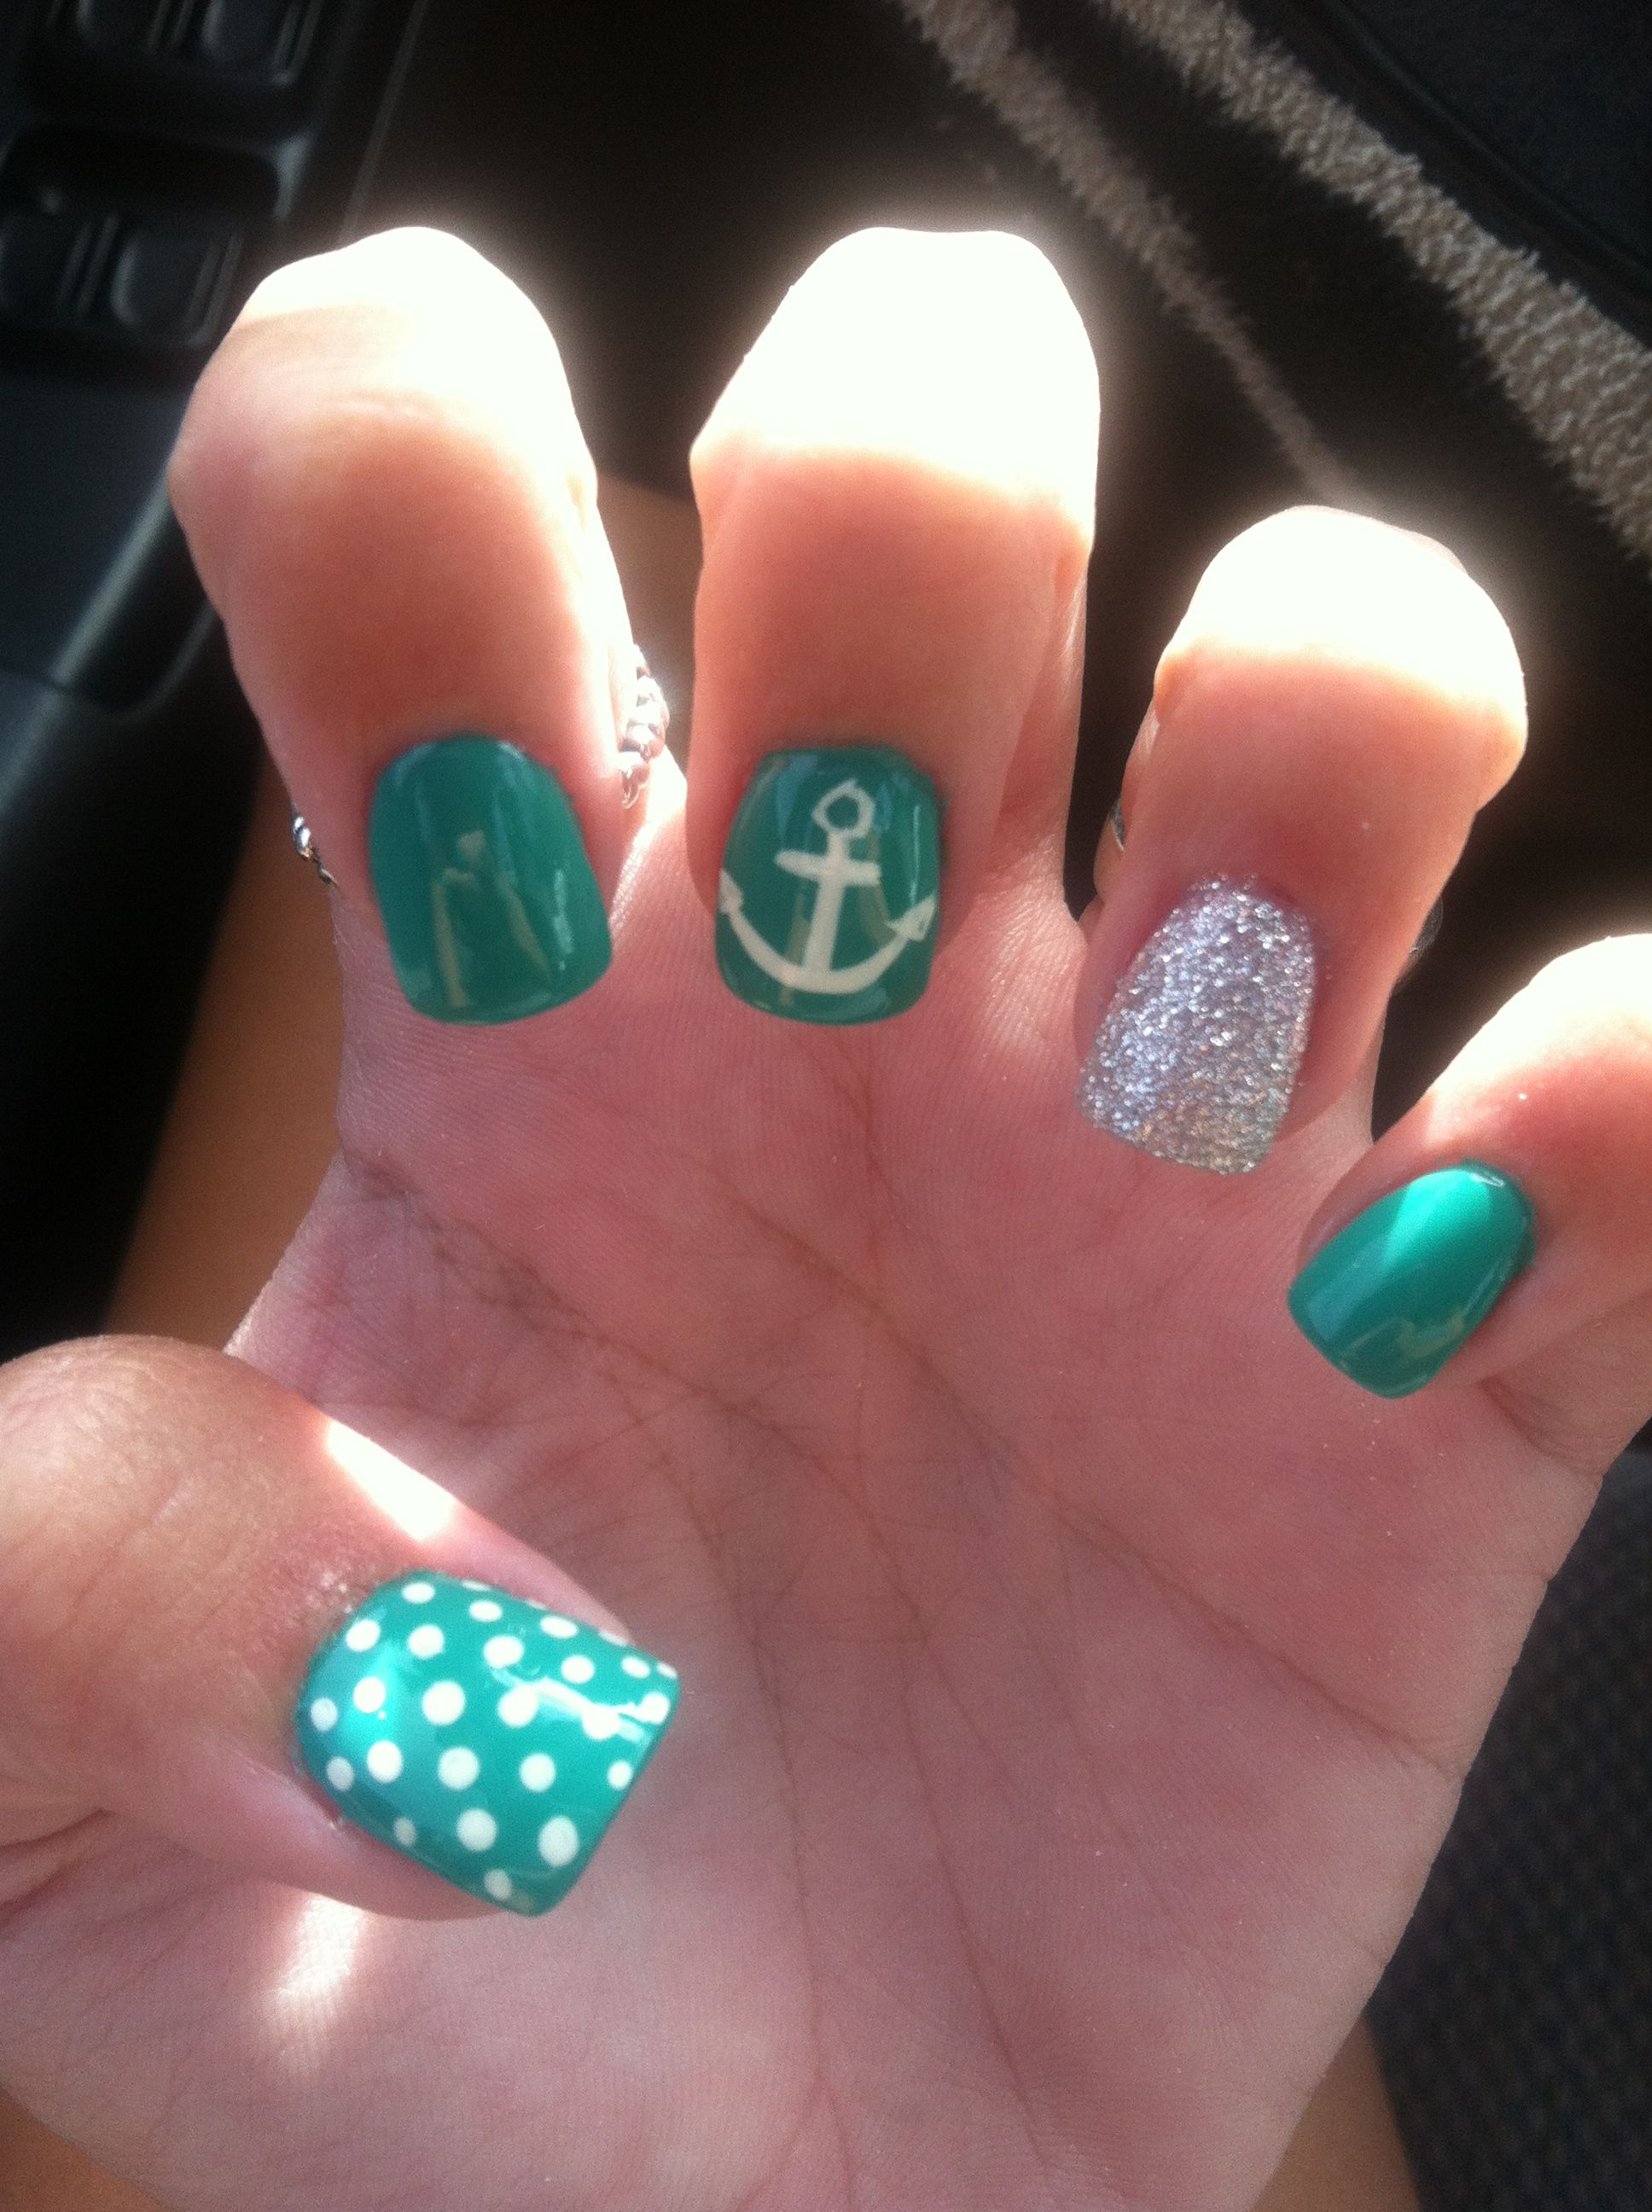 Cruise nails! | Hair & Beauty | Pinterest | Cruise nails ...